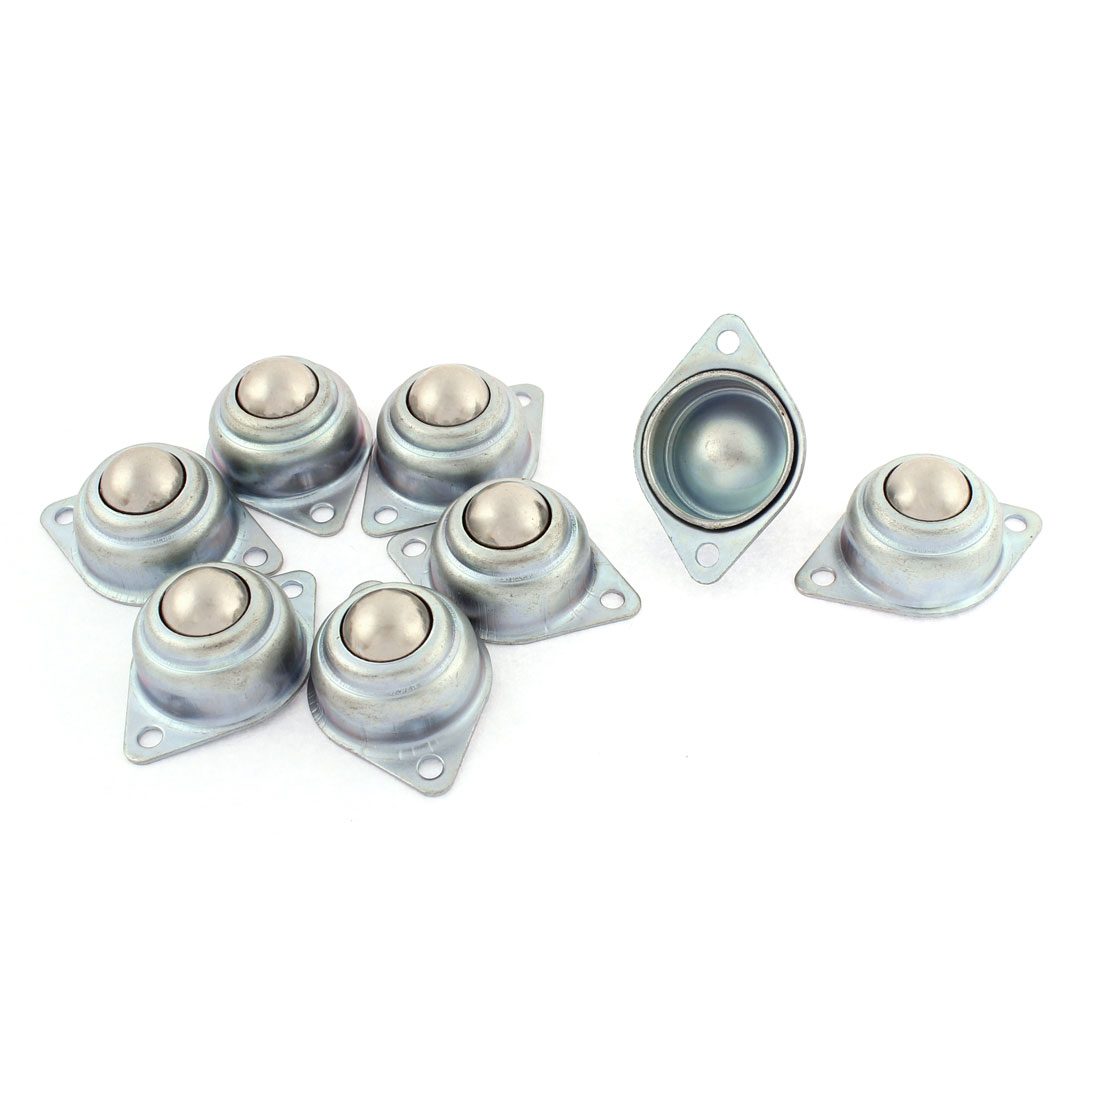 8pcs Eye Shape Flange Mounting Roller Ball Transfer Unit Bearing Silver Tone